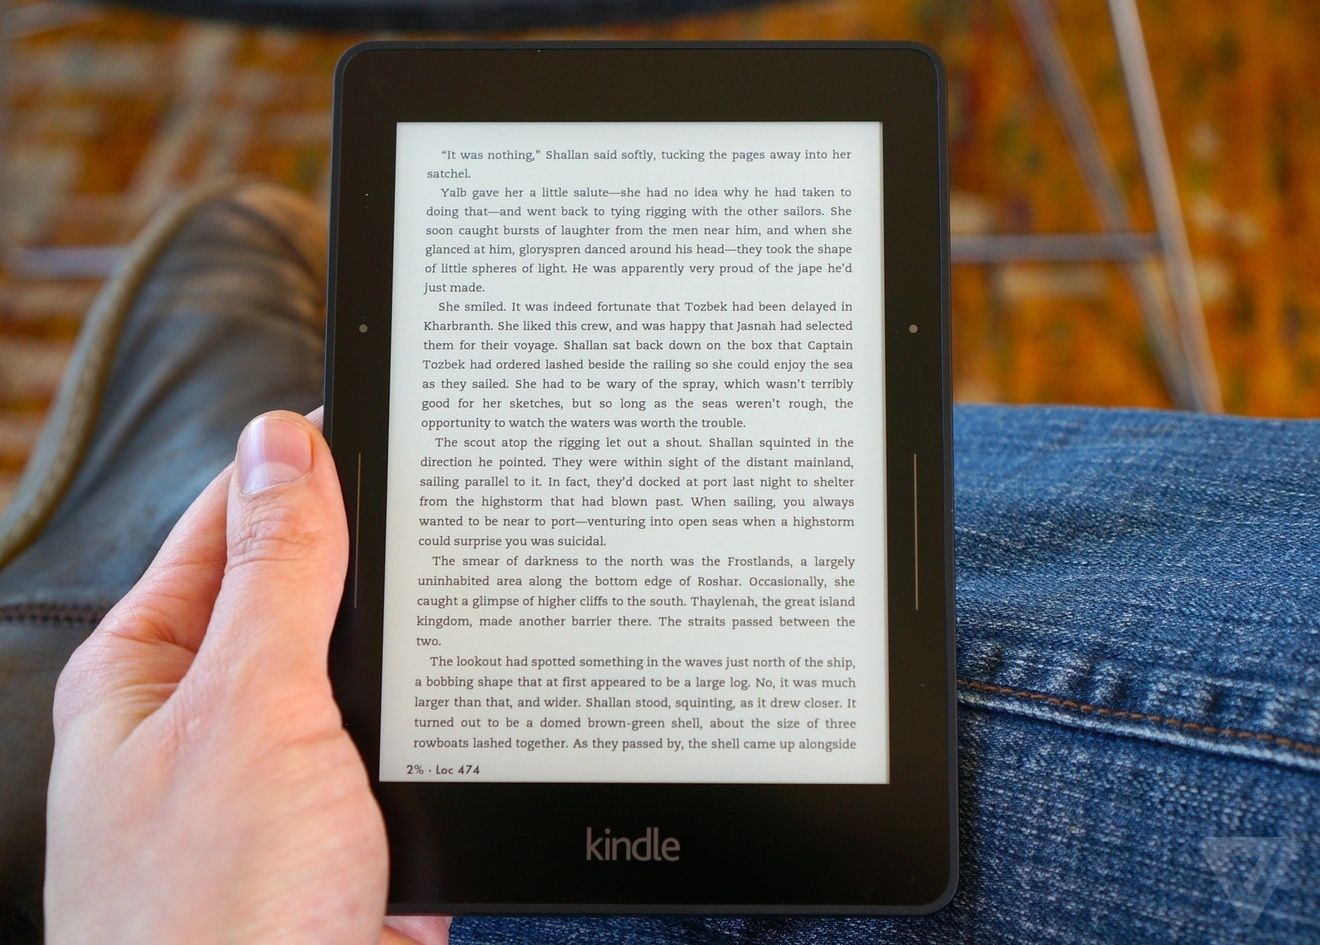 Kindle Voyage in all its glory (courtesy The Verge)